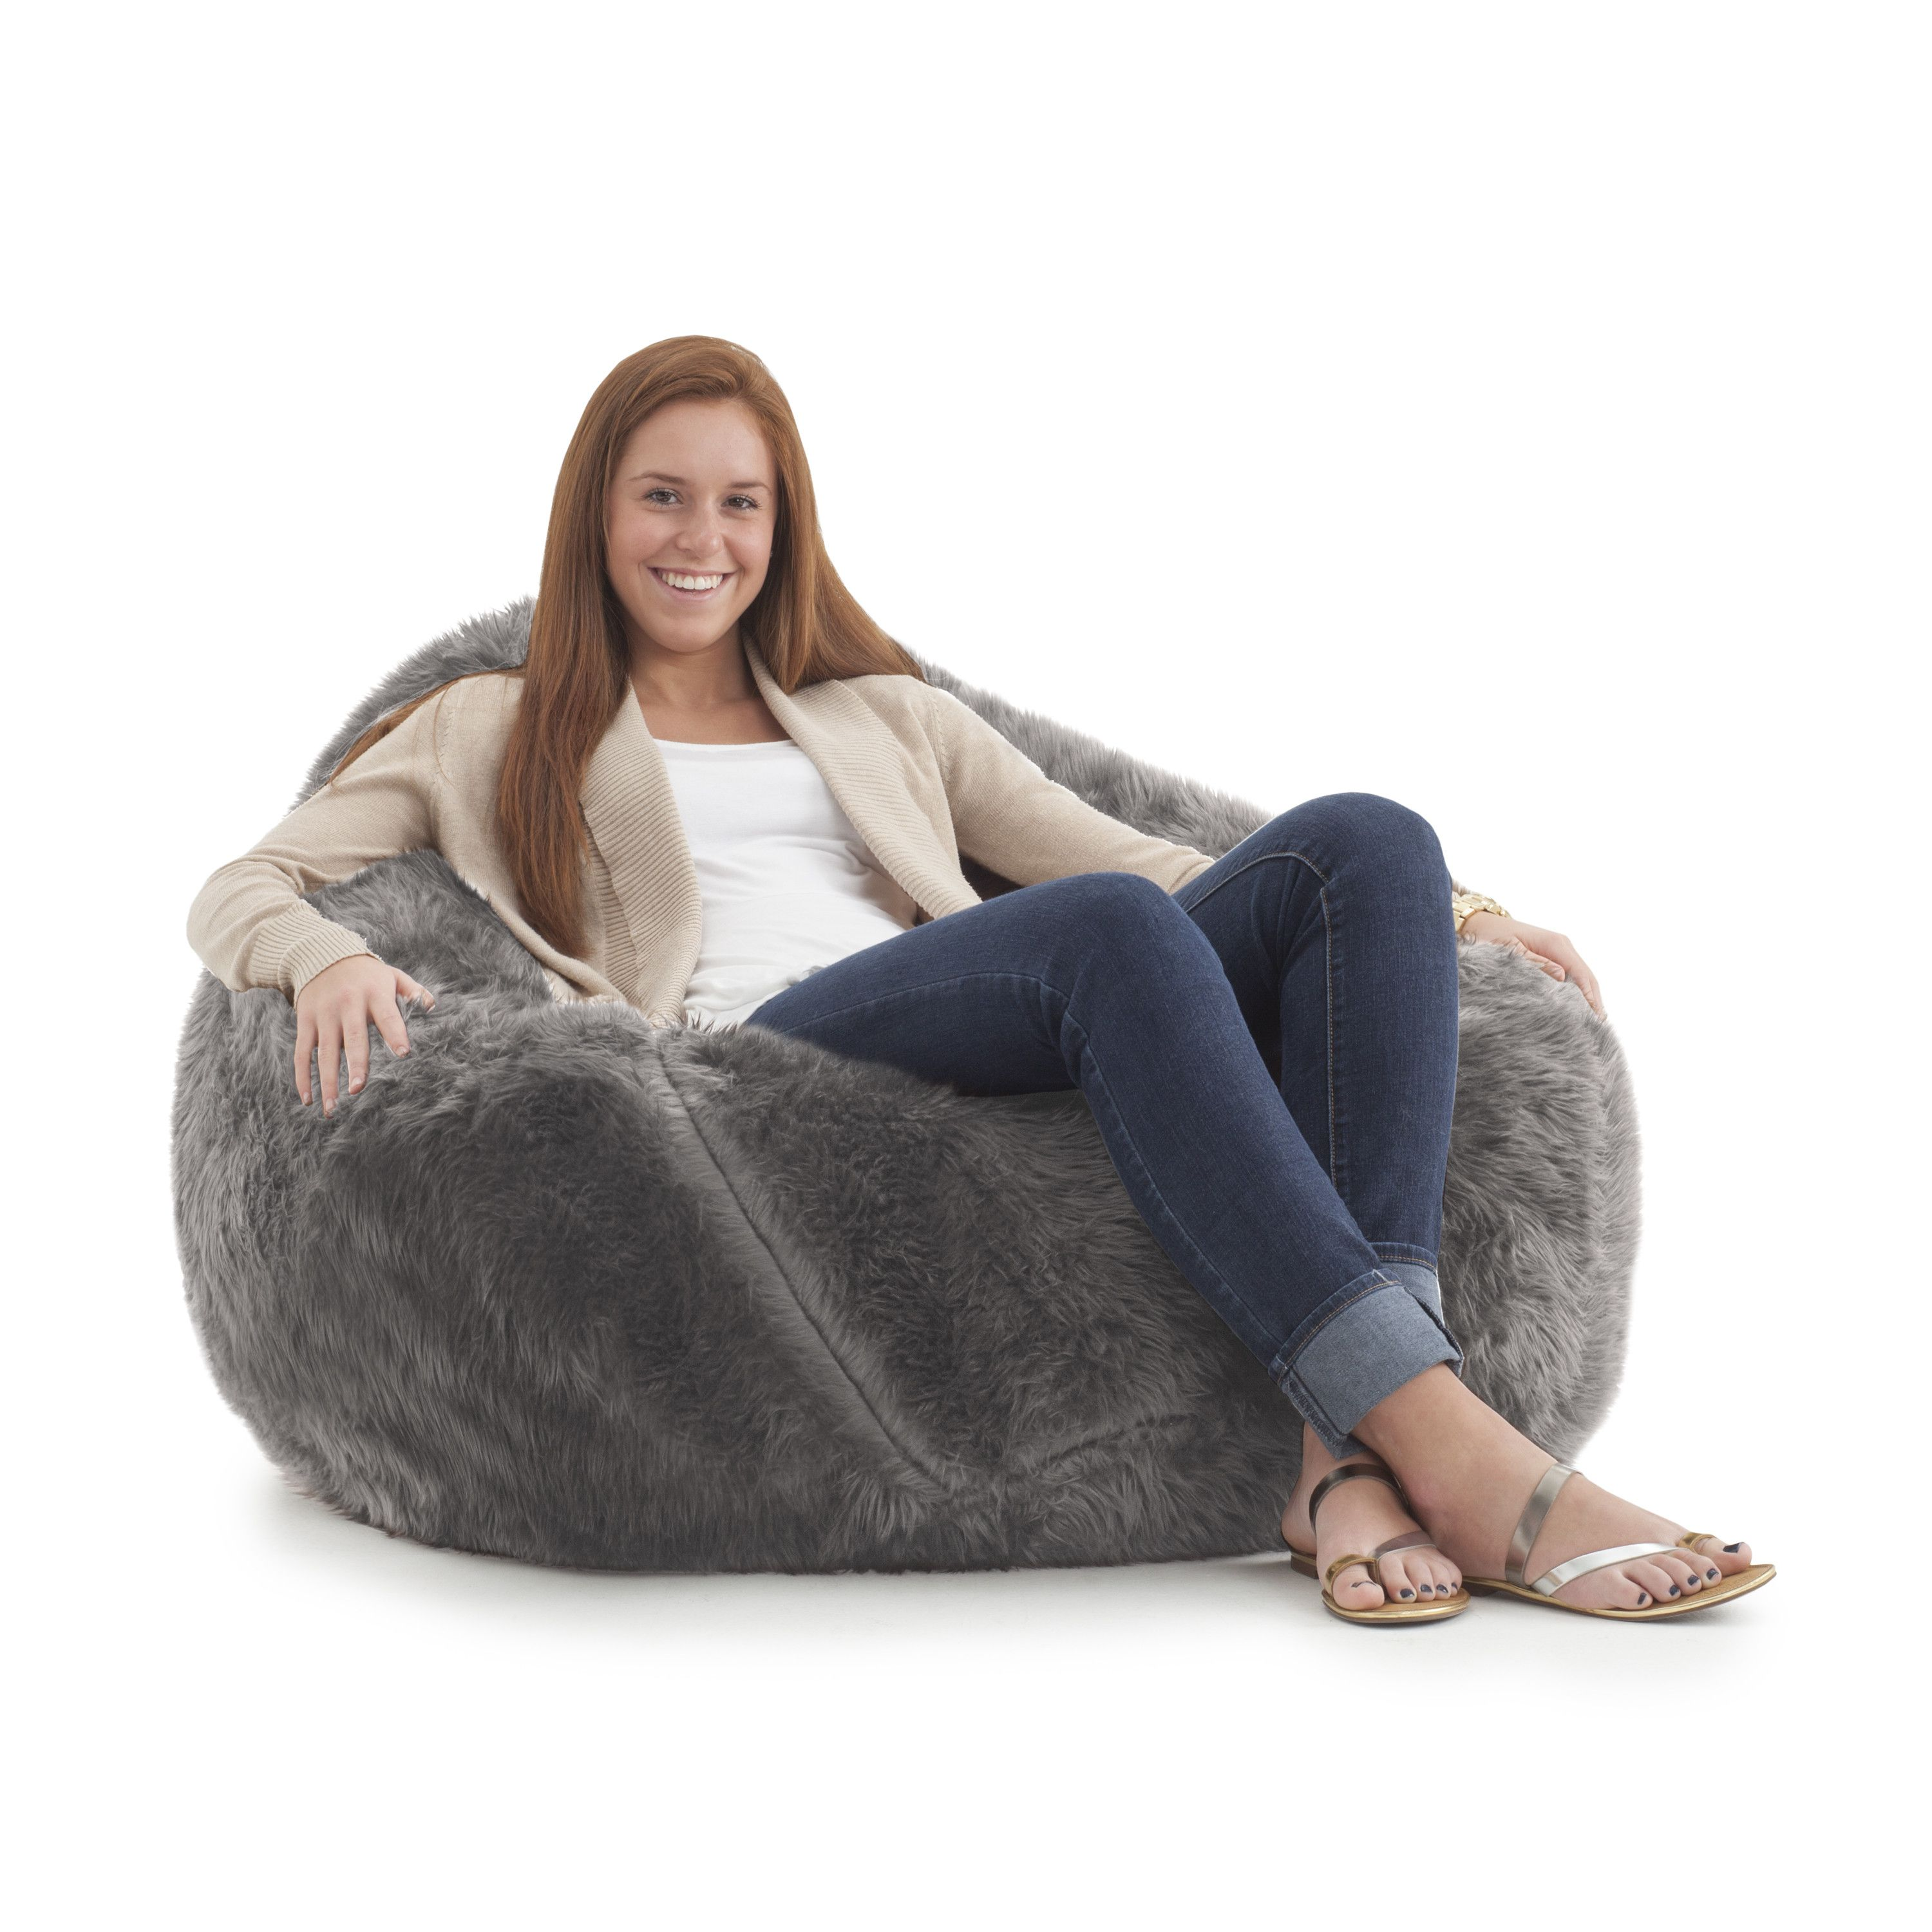 Wondrous Shop Wayfair For Bean Bag Chairs To Match Every Style And Forskolin Free Trial Chair Design Images Forskolin Free Trialorg